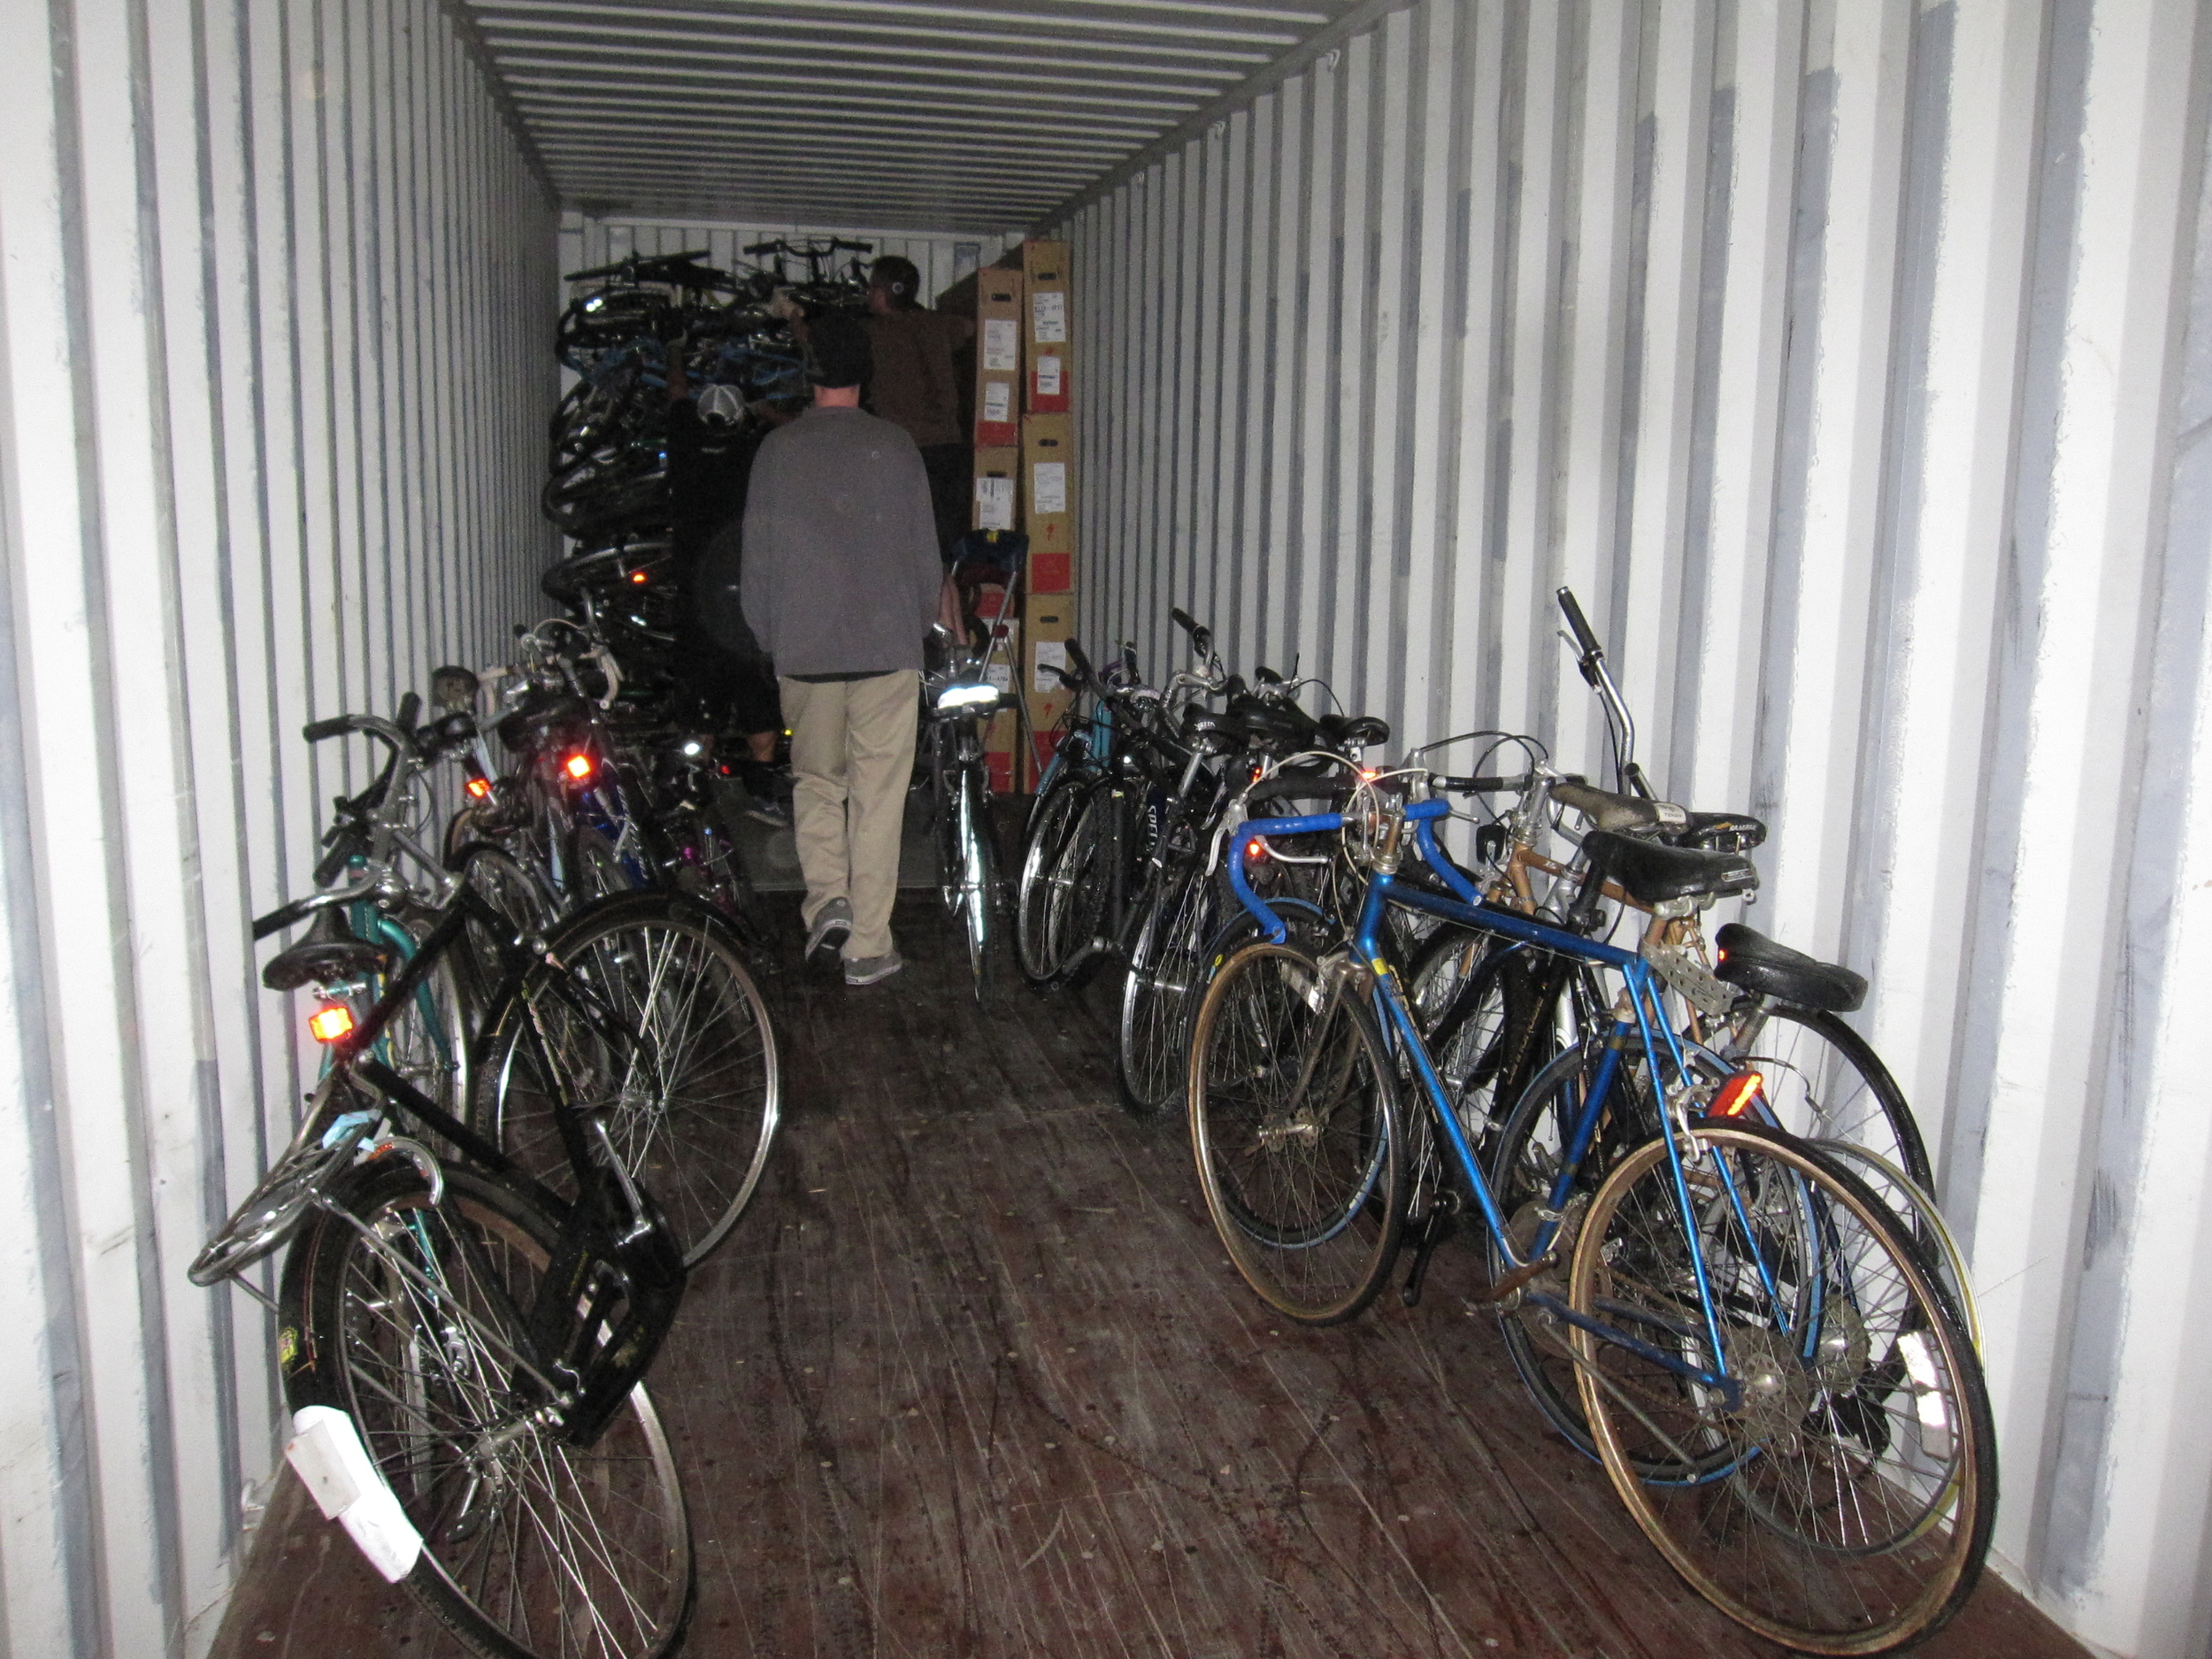 The first stack is done in the nose of the container. Bikes are staged along the sides of the can, so the loaders can select the bike that will fit best in a particular spot - like Tetris.